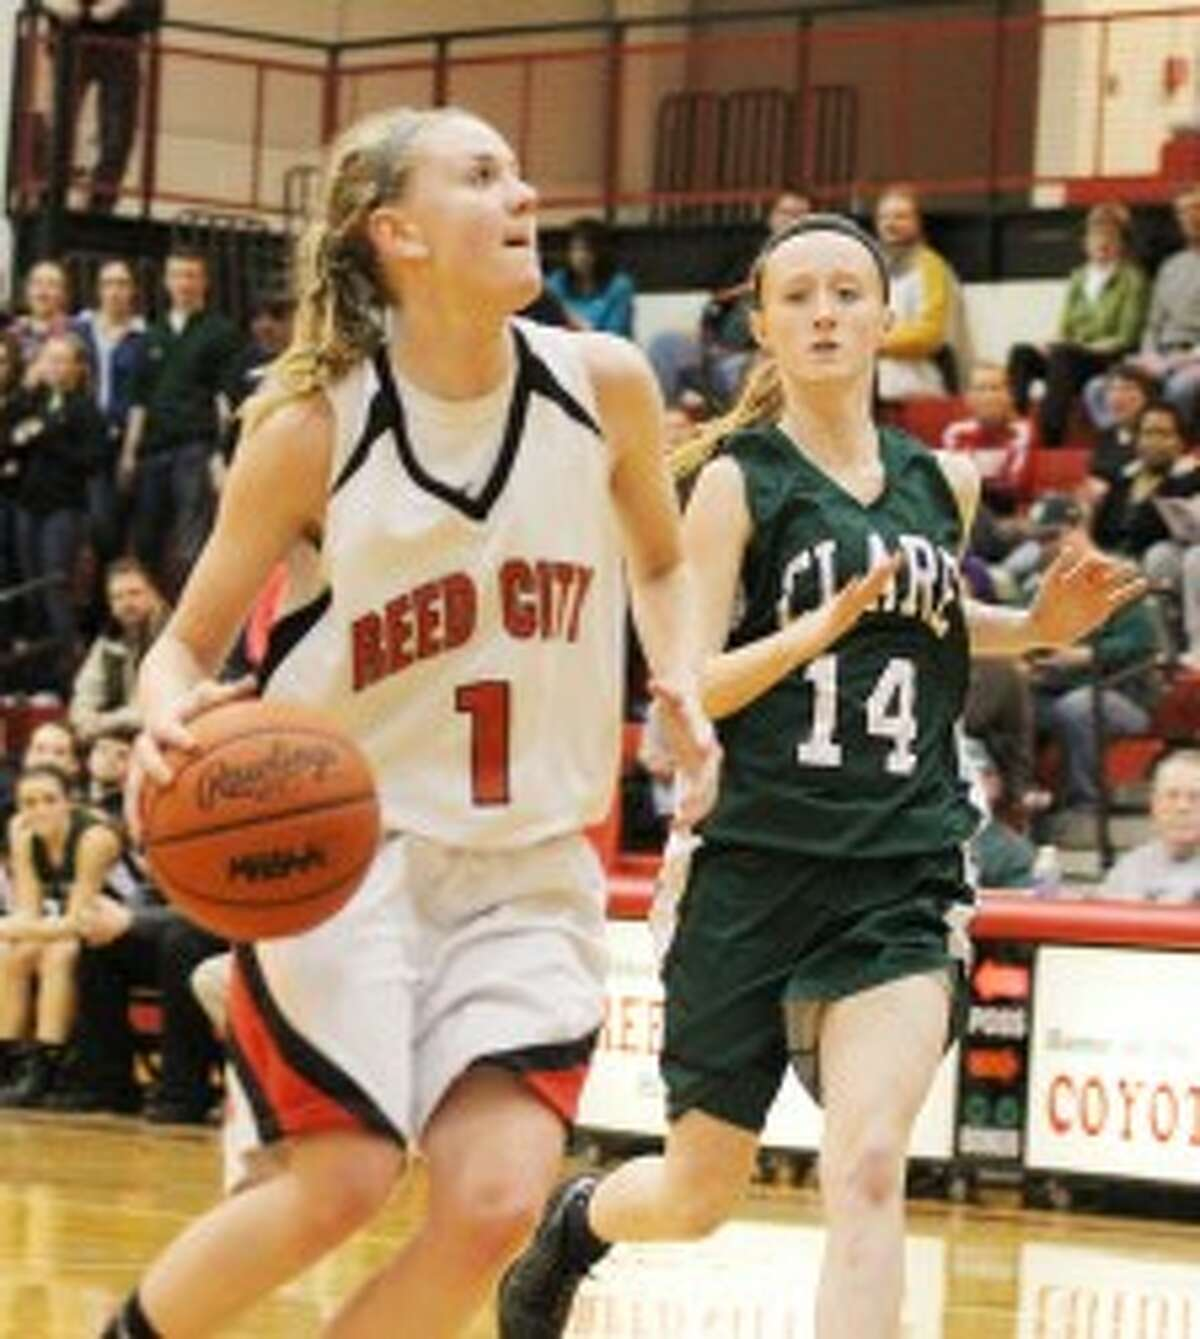 GOING UP: Reed City's Emma Lockhart goes in for a lay-up against Clare in district semifinal action on Wednesday. (Pioneer photo/Martin Slagter)